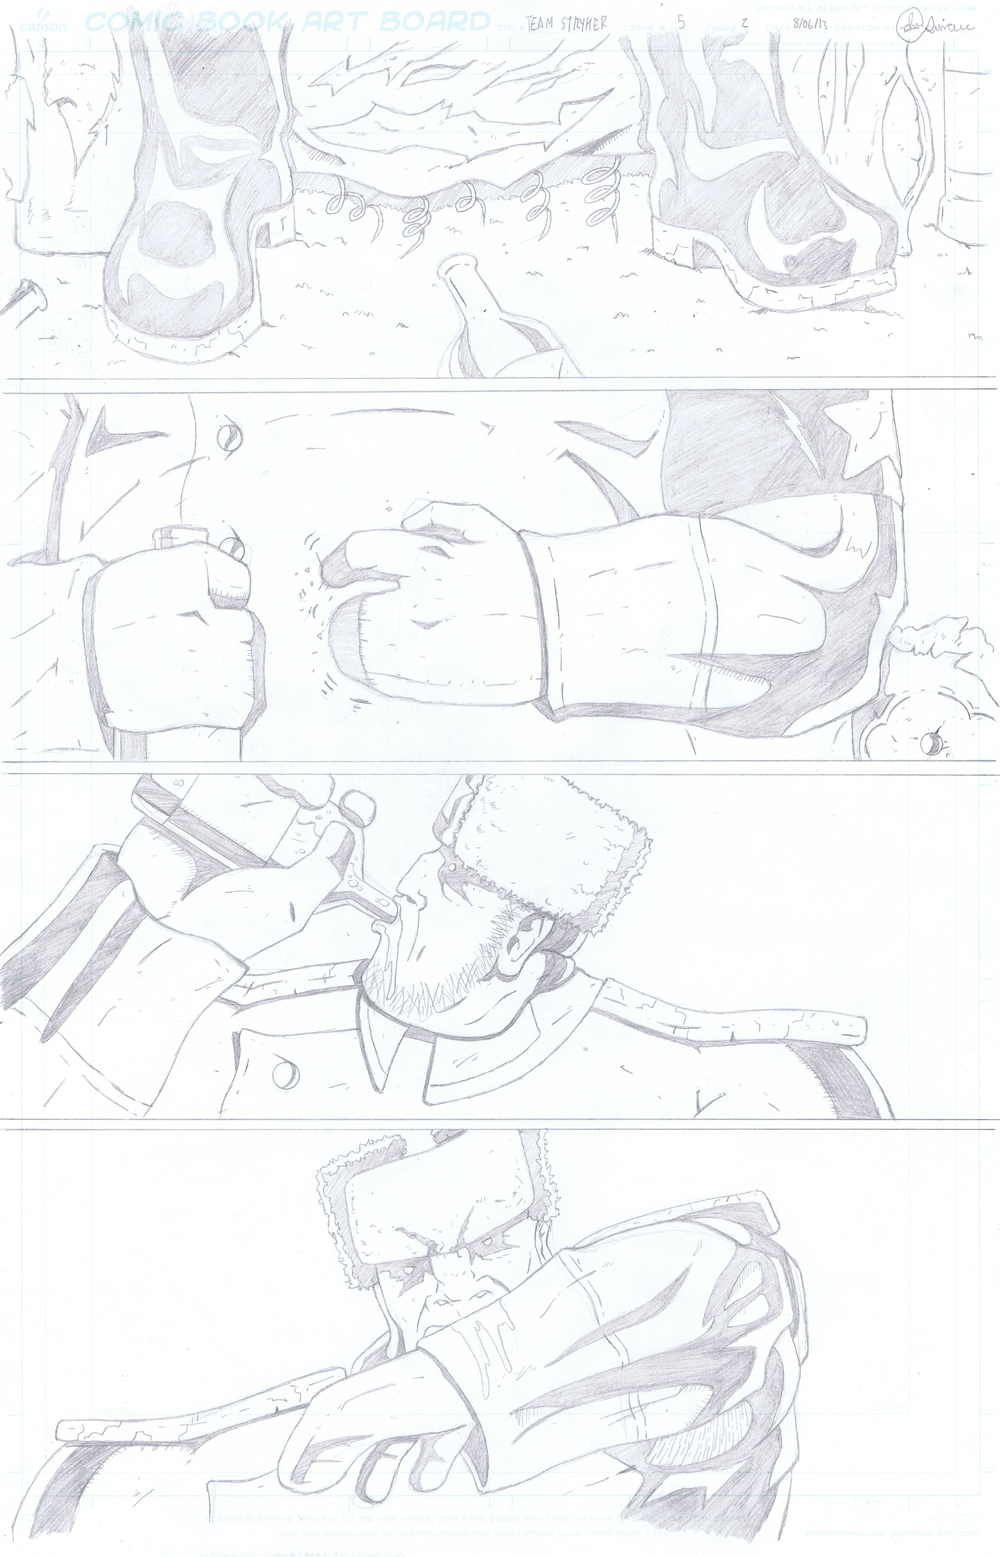 MISSION 005: PAGE 02 PENCIL